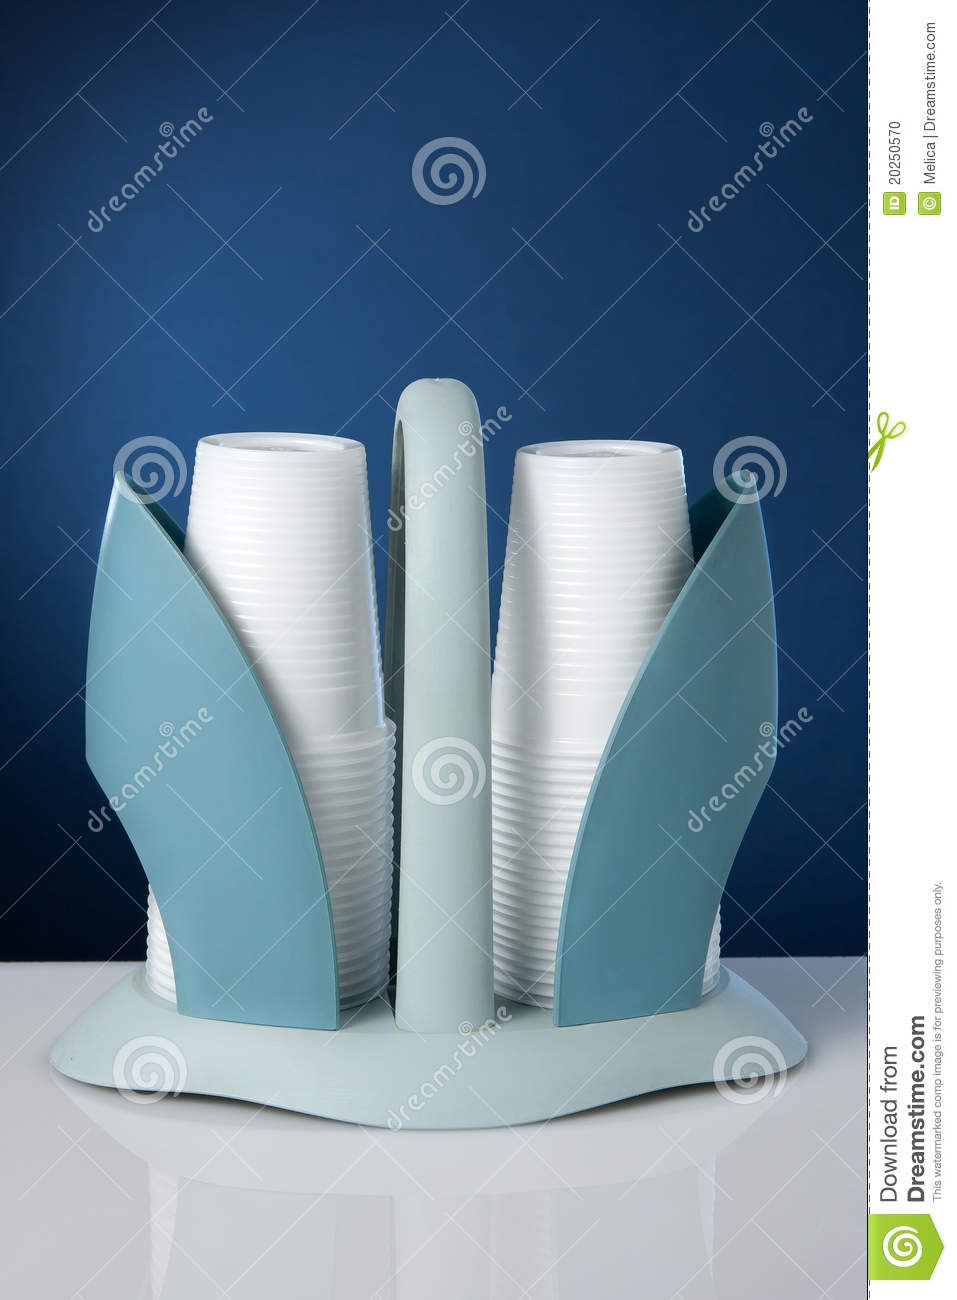 Disposable Cup Holder Stock Photo.